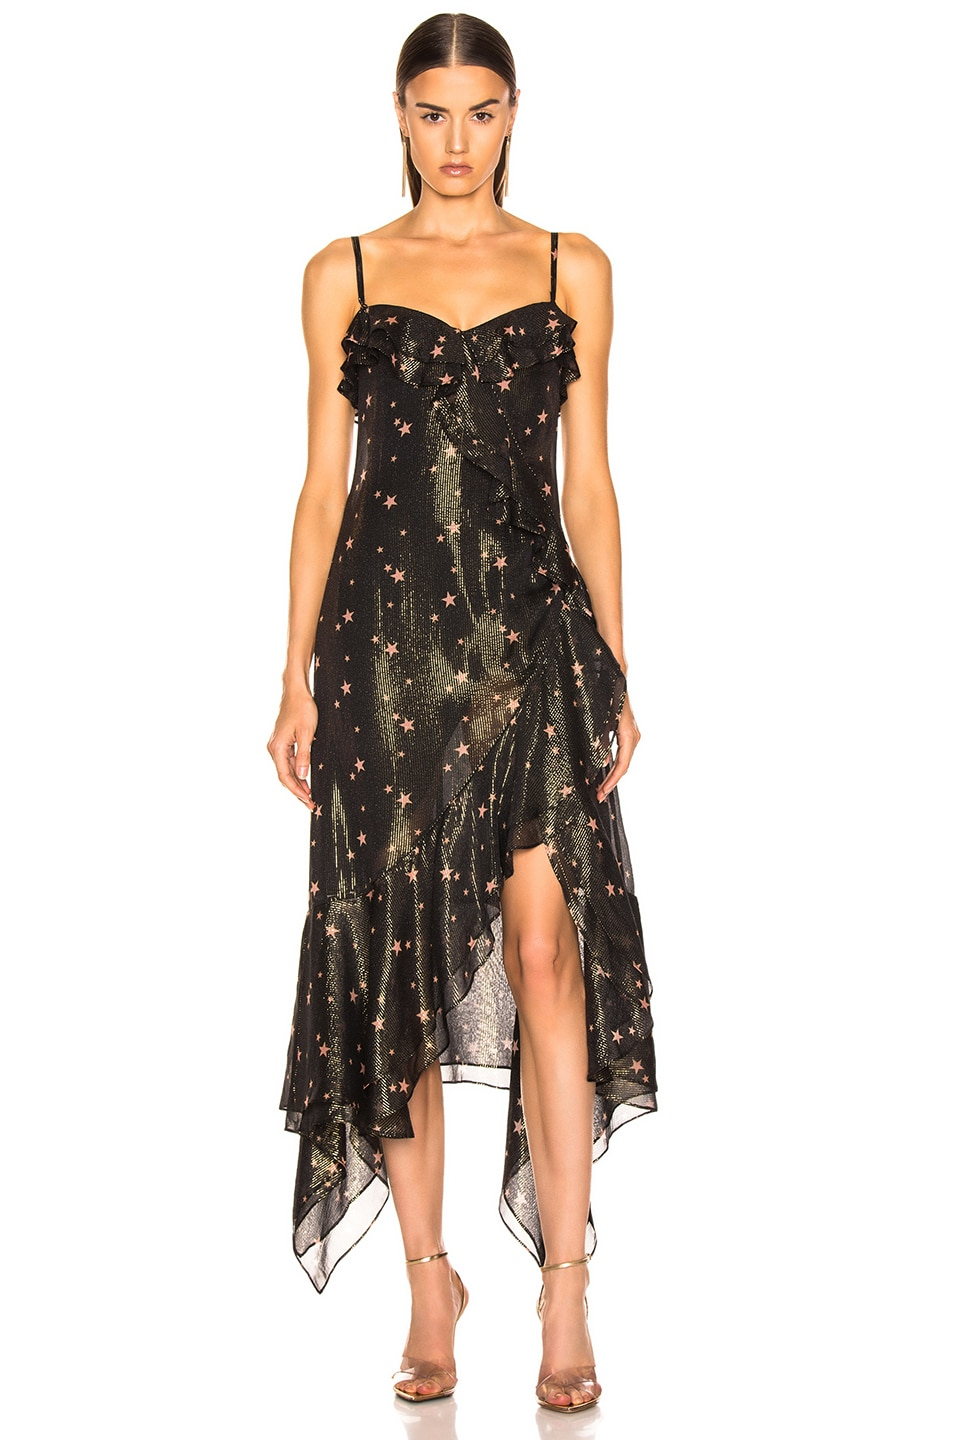 Image 2 of JONATHAN SIMKHAI for FWRD Strapless Ruffle Dress in Star Print